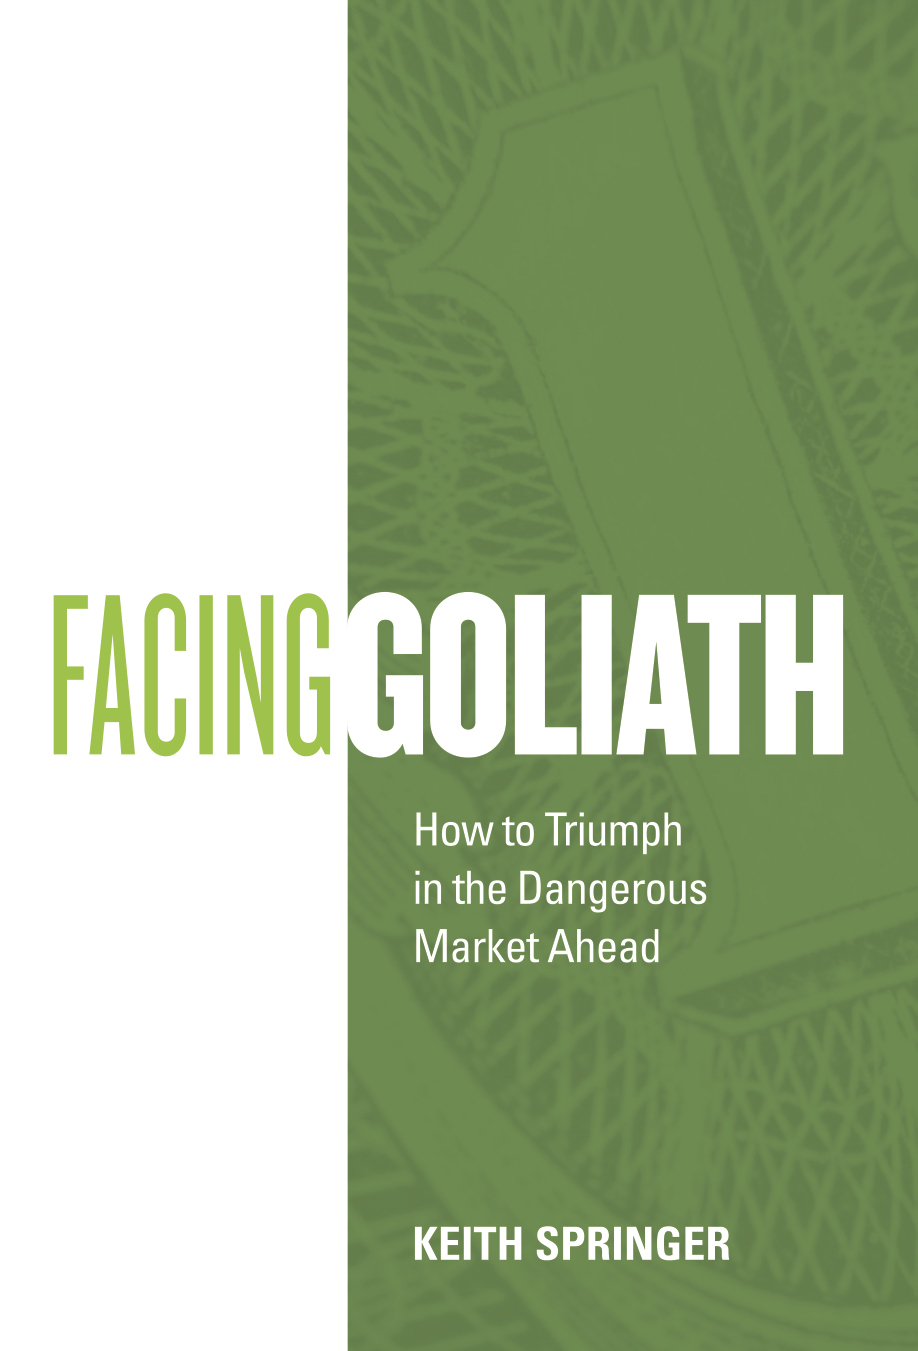 Facing Goliath_front cover artwork